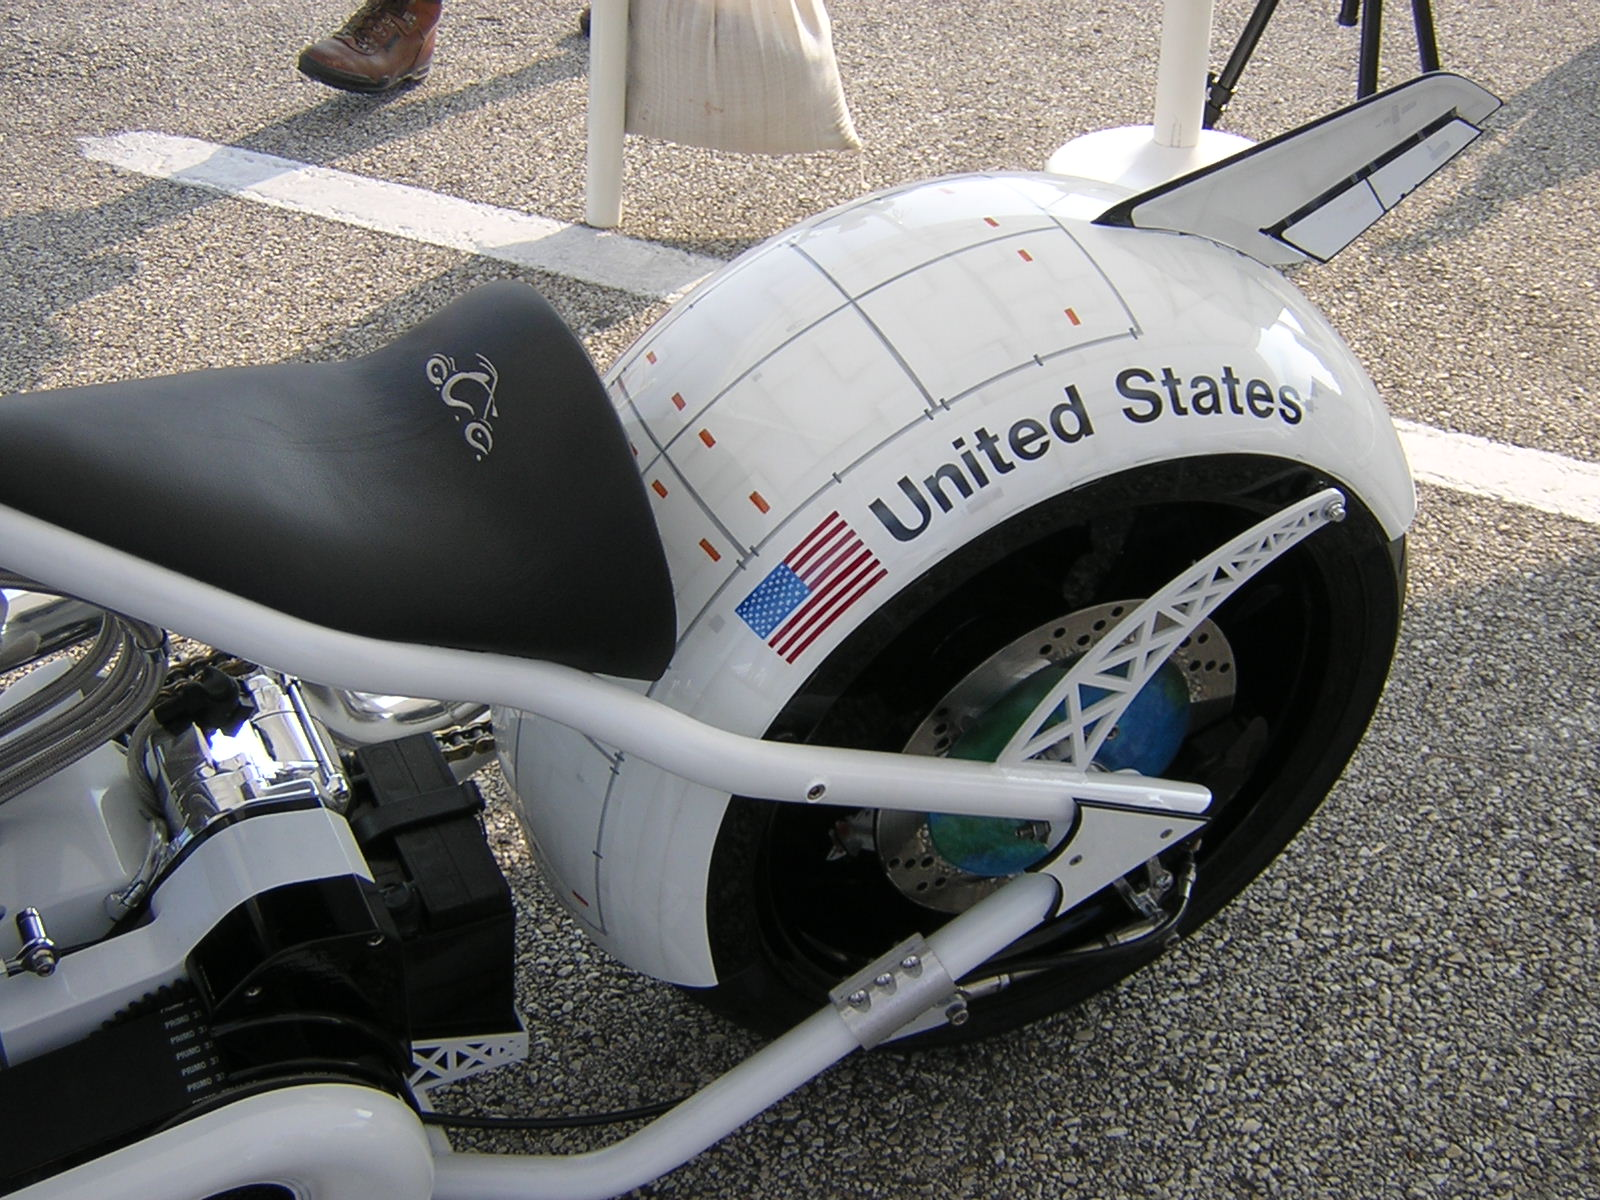 space shuttle bike occ - photo #4